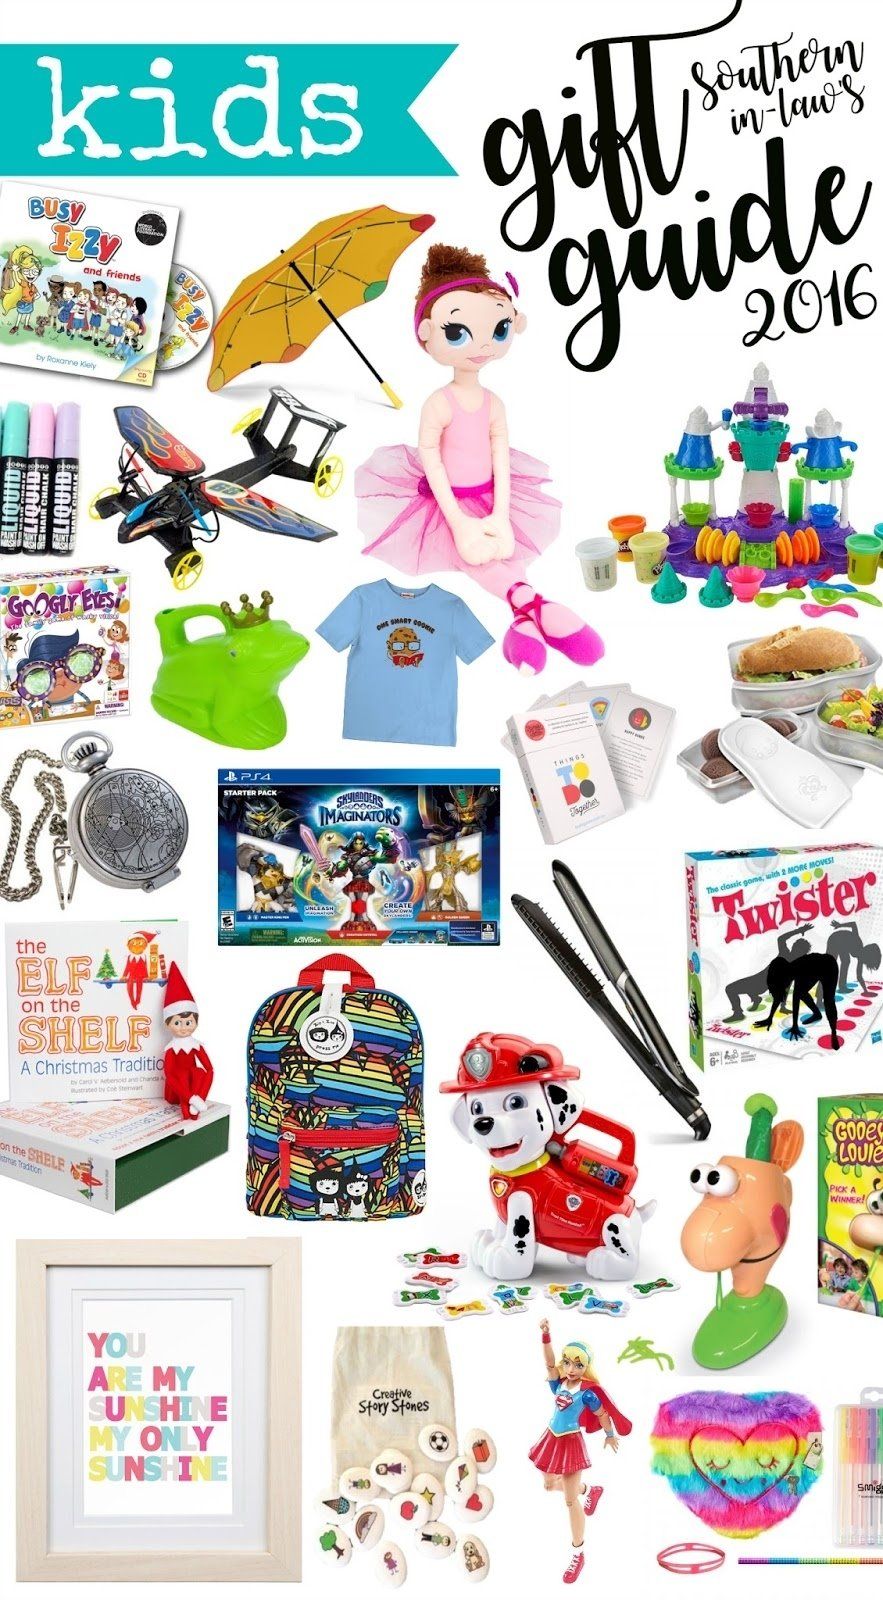 10 Fabulous Christmas Gift Ideas For Kids southern in law 2016 kids christmas gift guide 8 2020